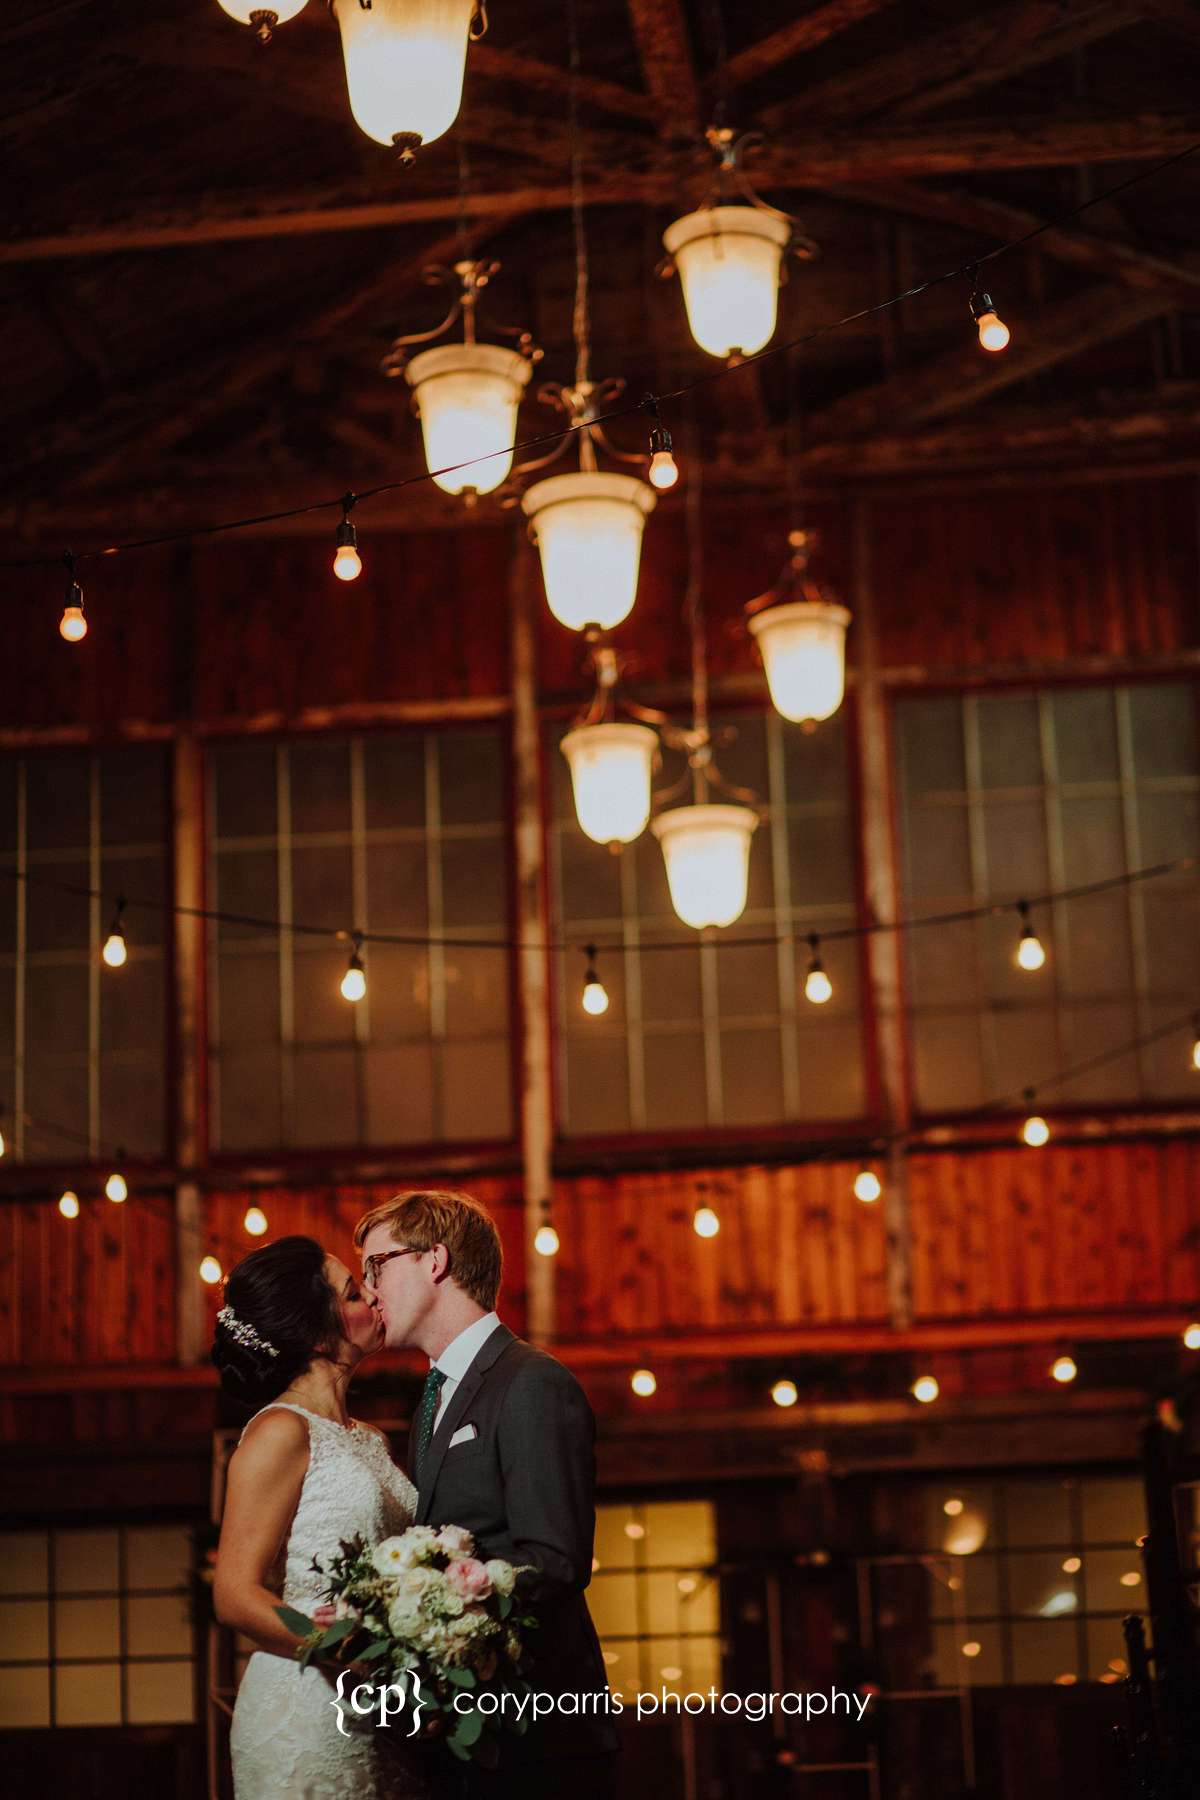 SODO Park is beautiful in the wedding portraits